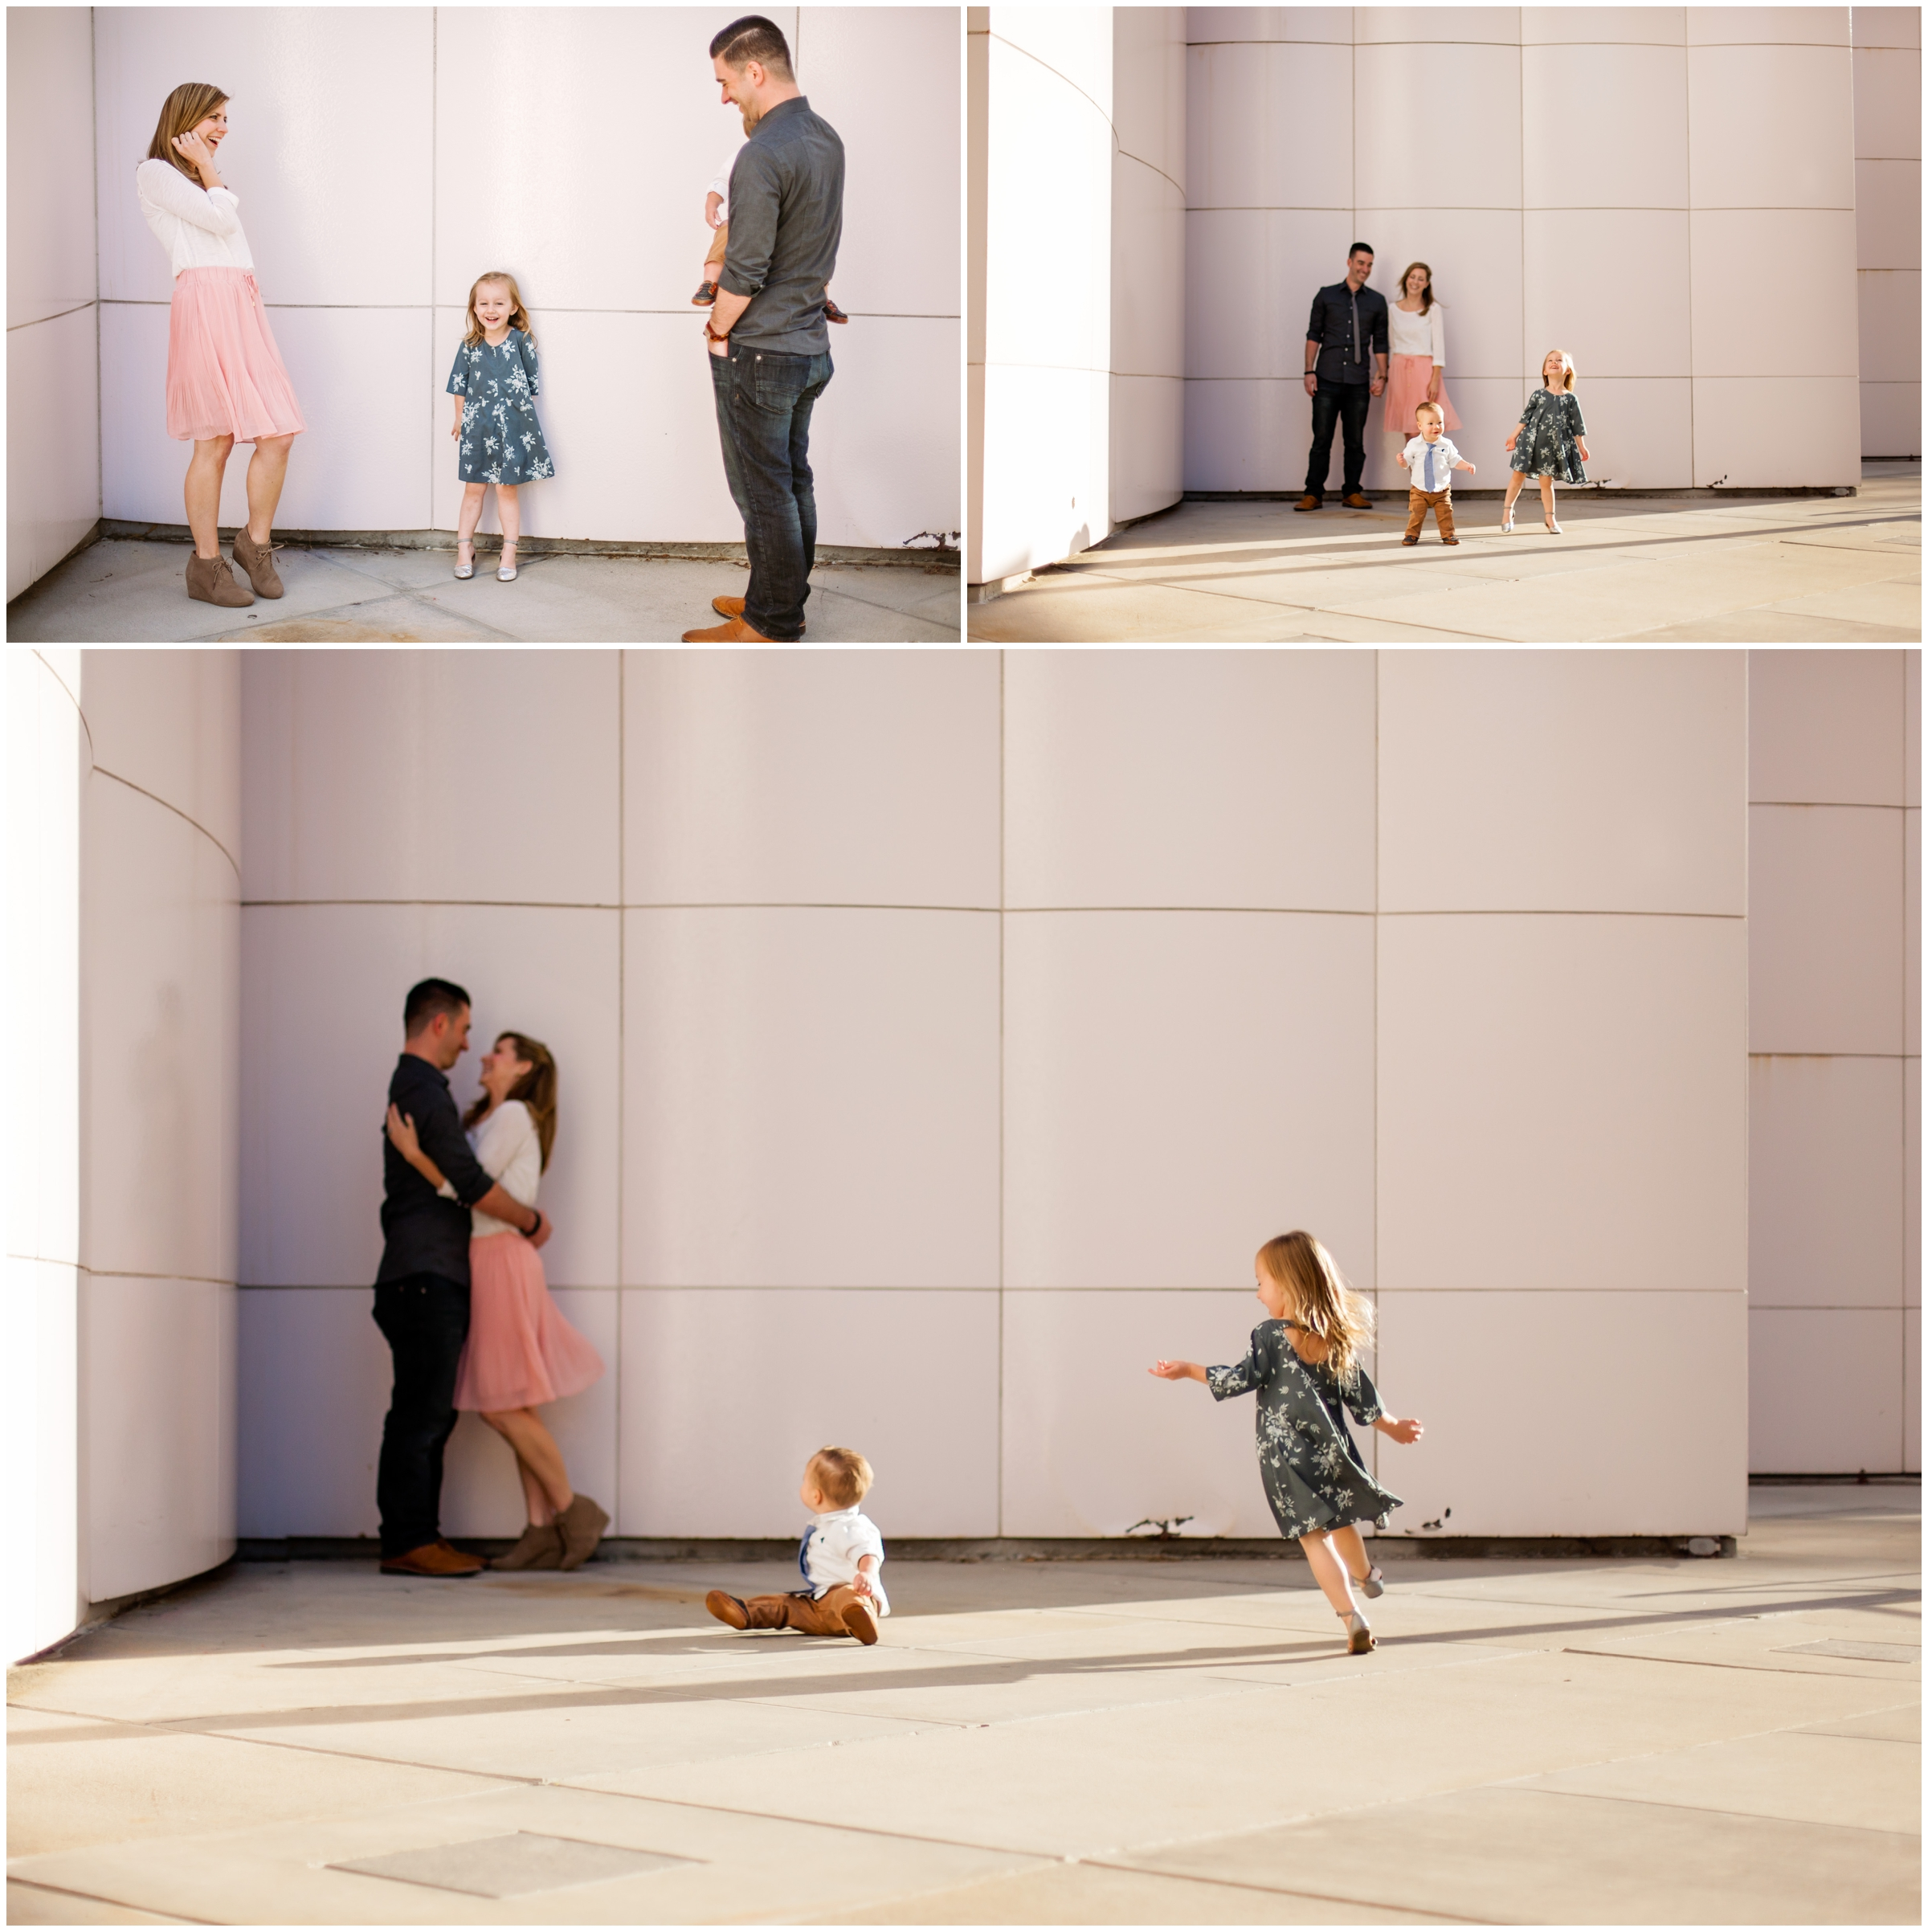 Family Portraits at LACMA by Just Maggie Photography - Los Angeles Family Photographer